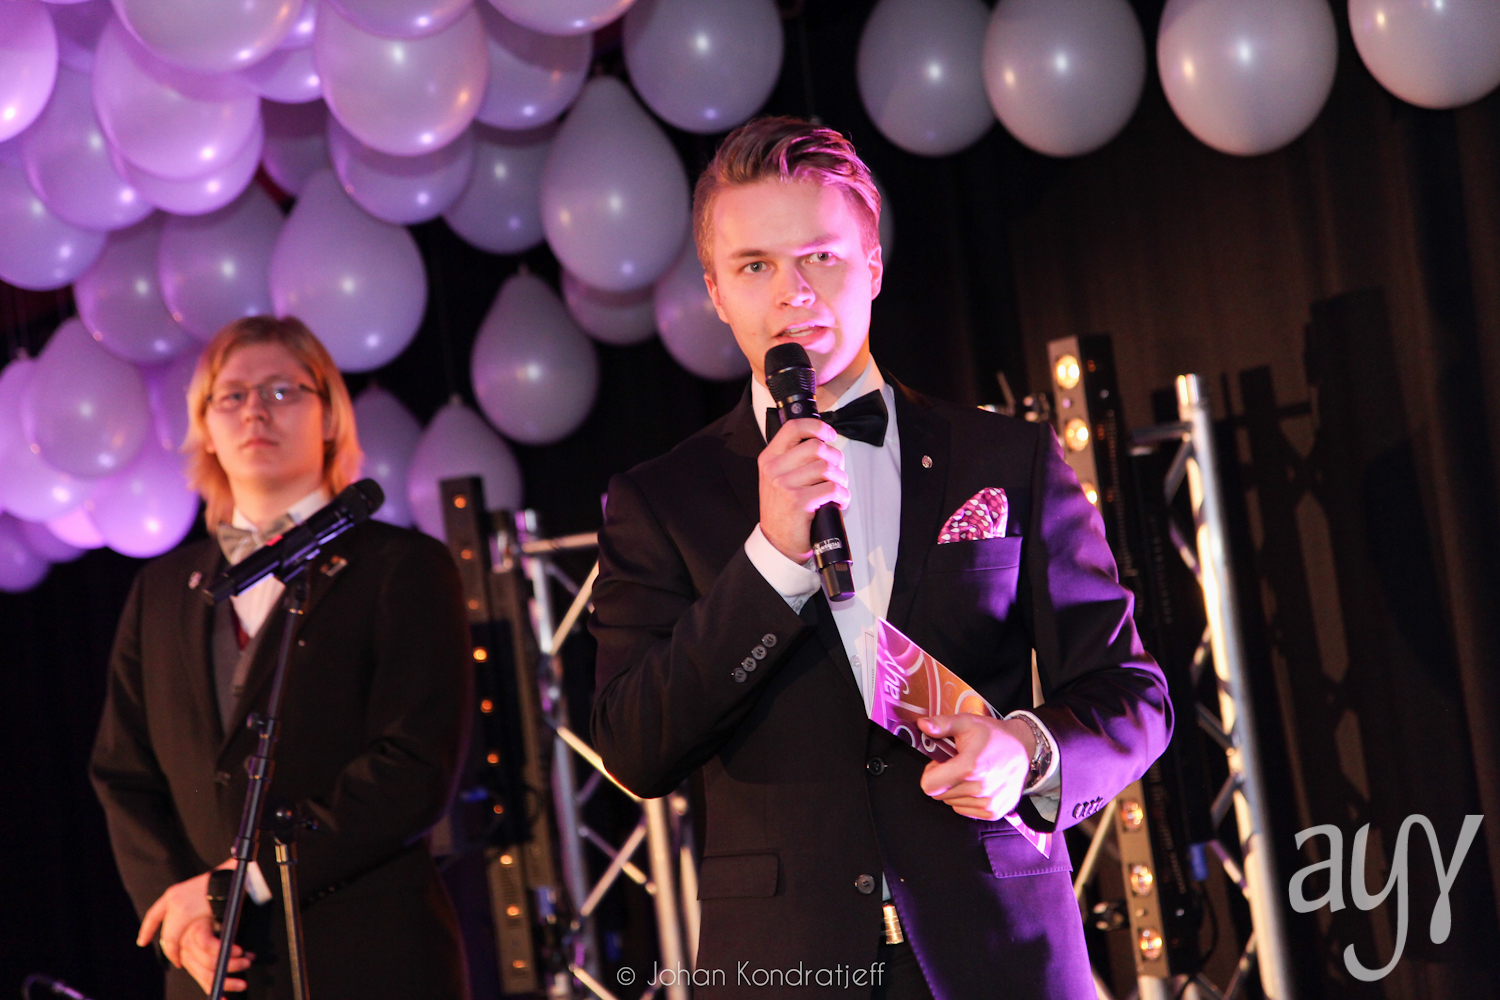 Hosting the 5th Annual Ball of Aalto University Student Union. Photo: Johan Kodratjeff